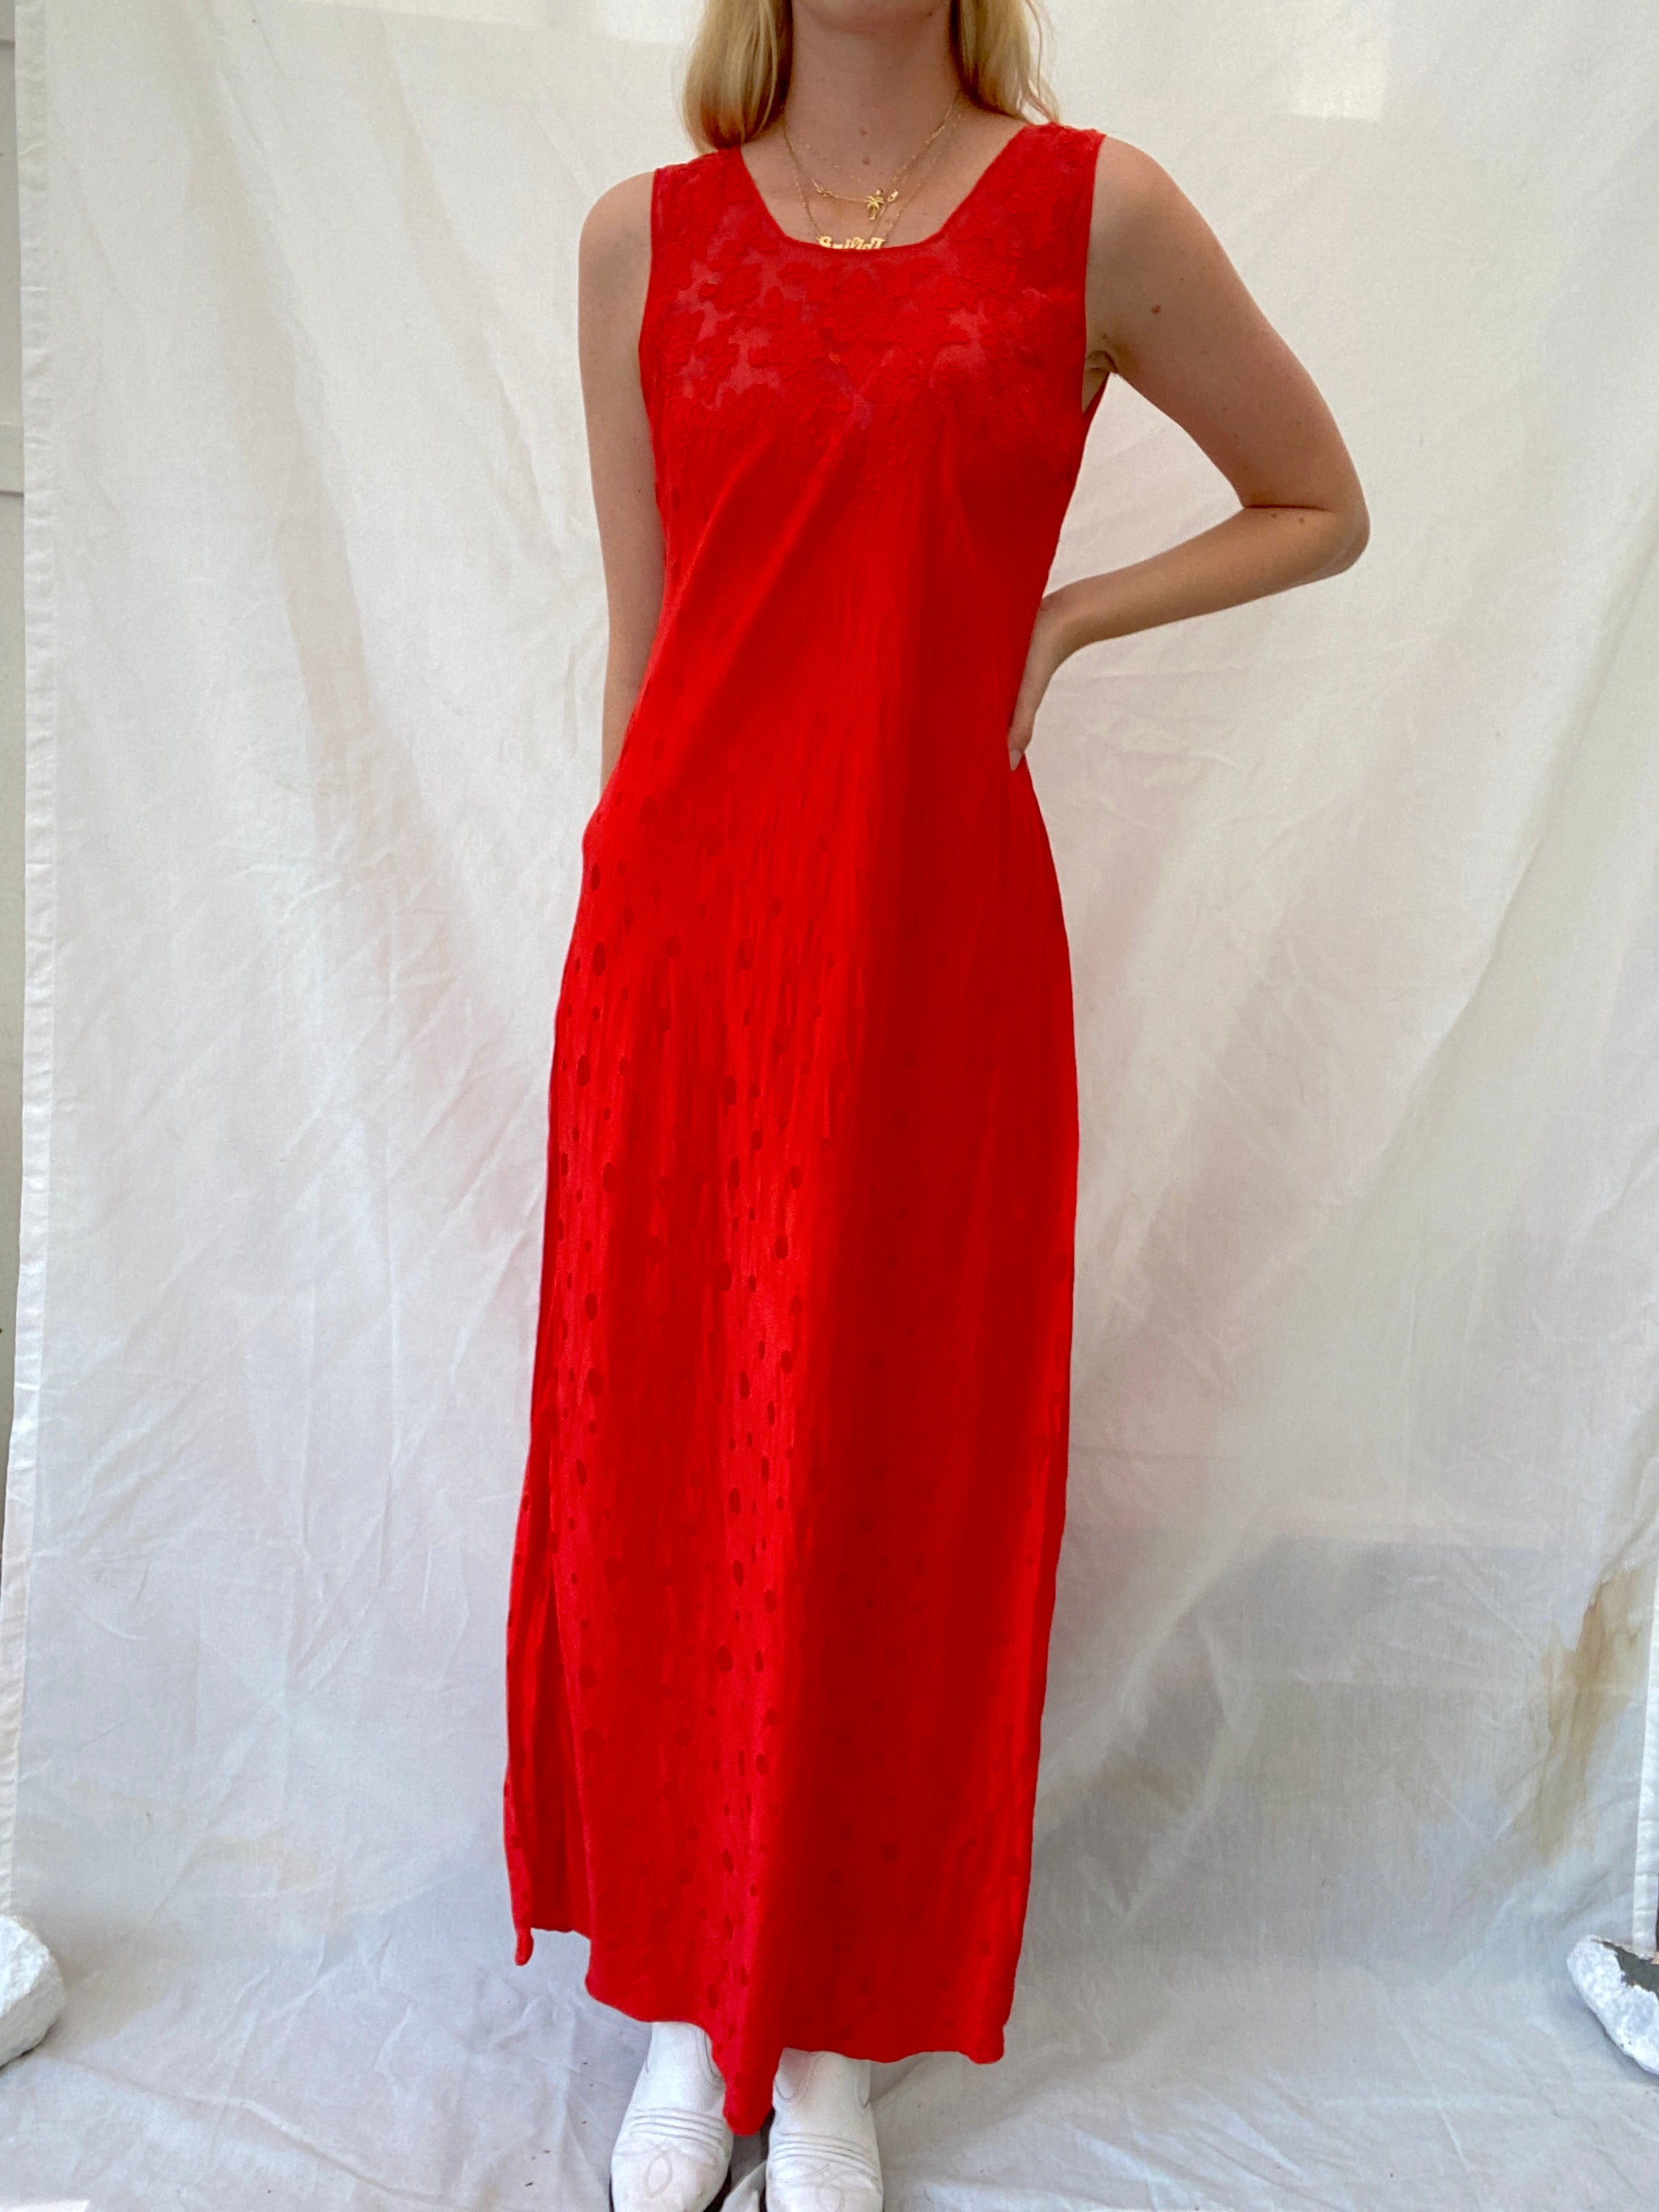 Hand Dyed Cherry Red Printed Silk Dress